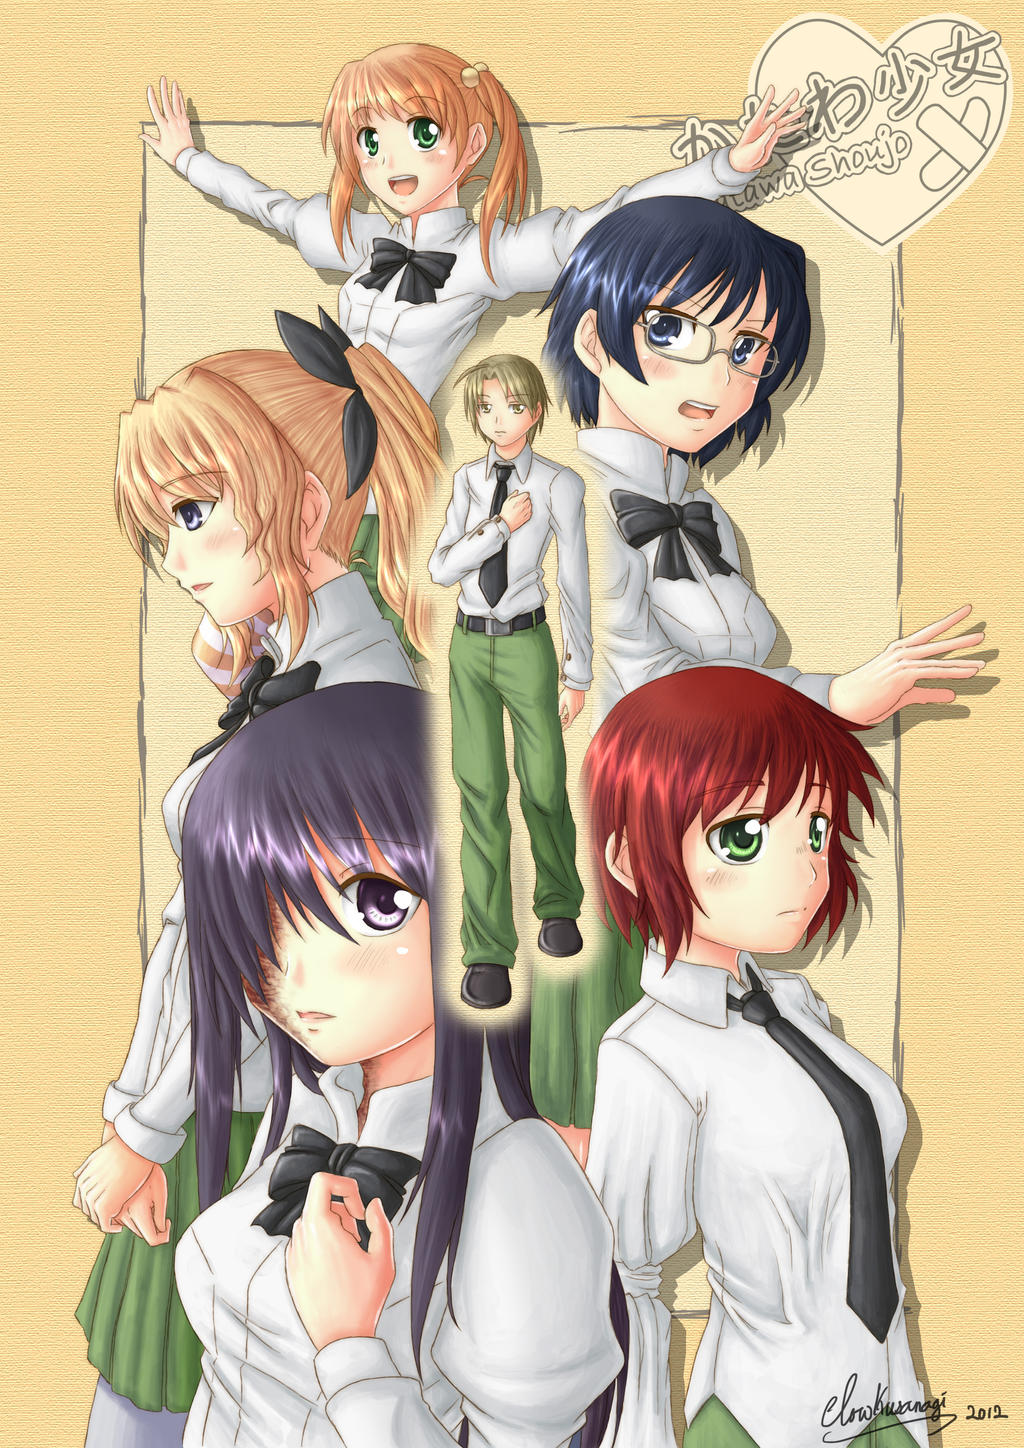 Dating sims like katawa shoujo-in-Hastings